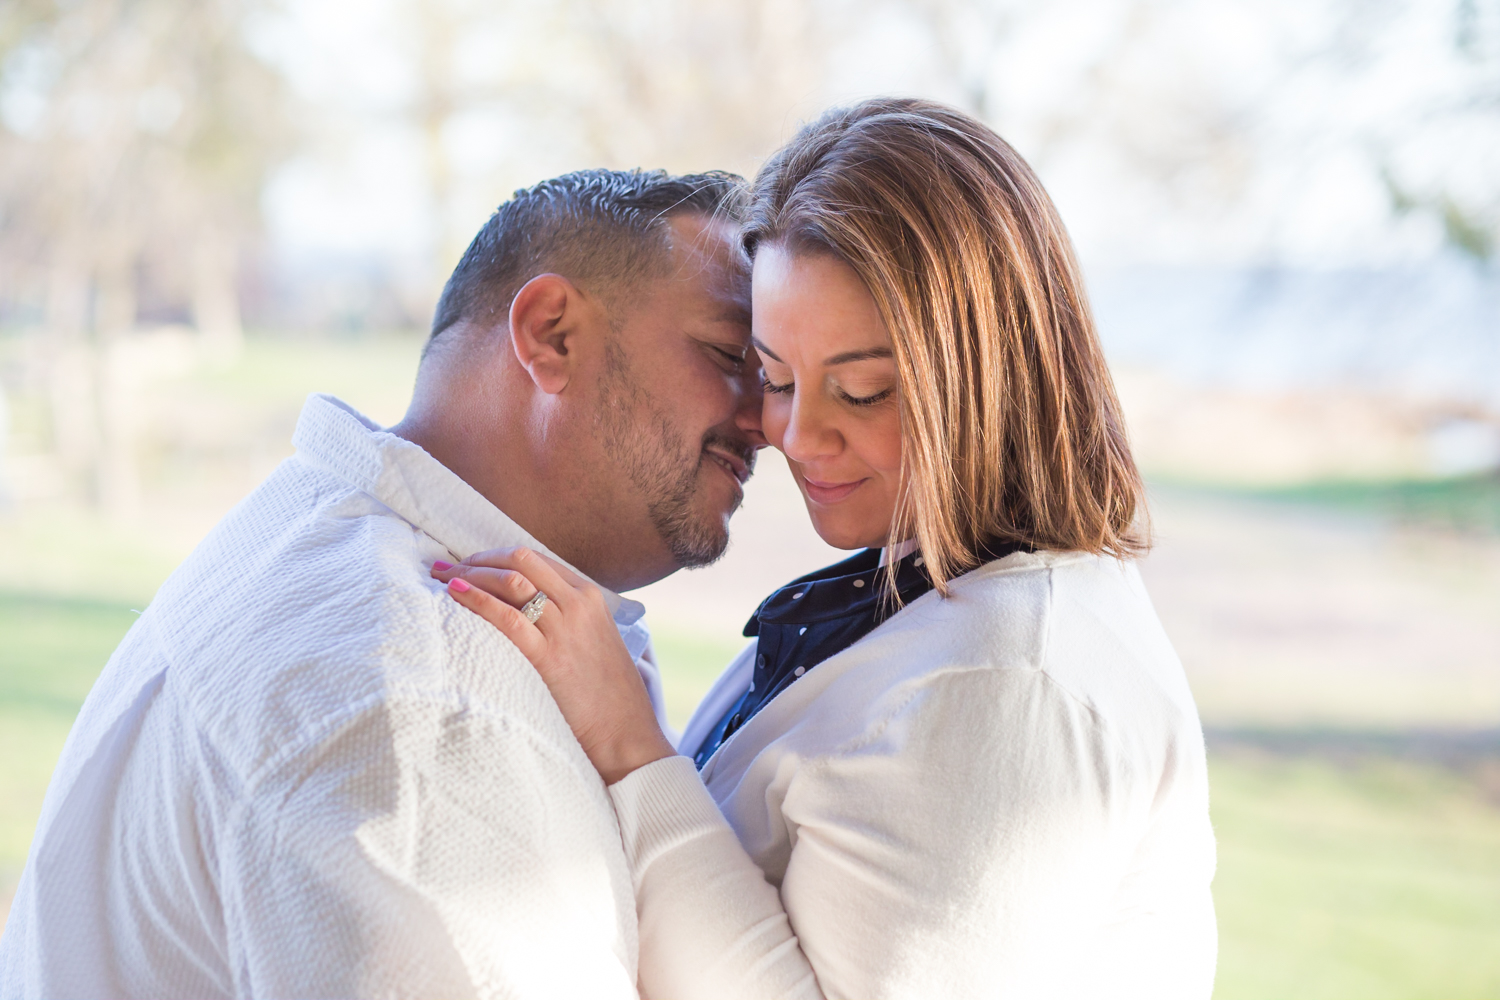 lighthouse-point-park-engagement-session-new-haven-top-ct-nyc-wedding-photographer-shaina-lee-photography